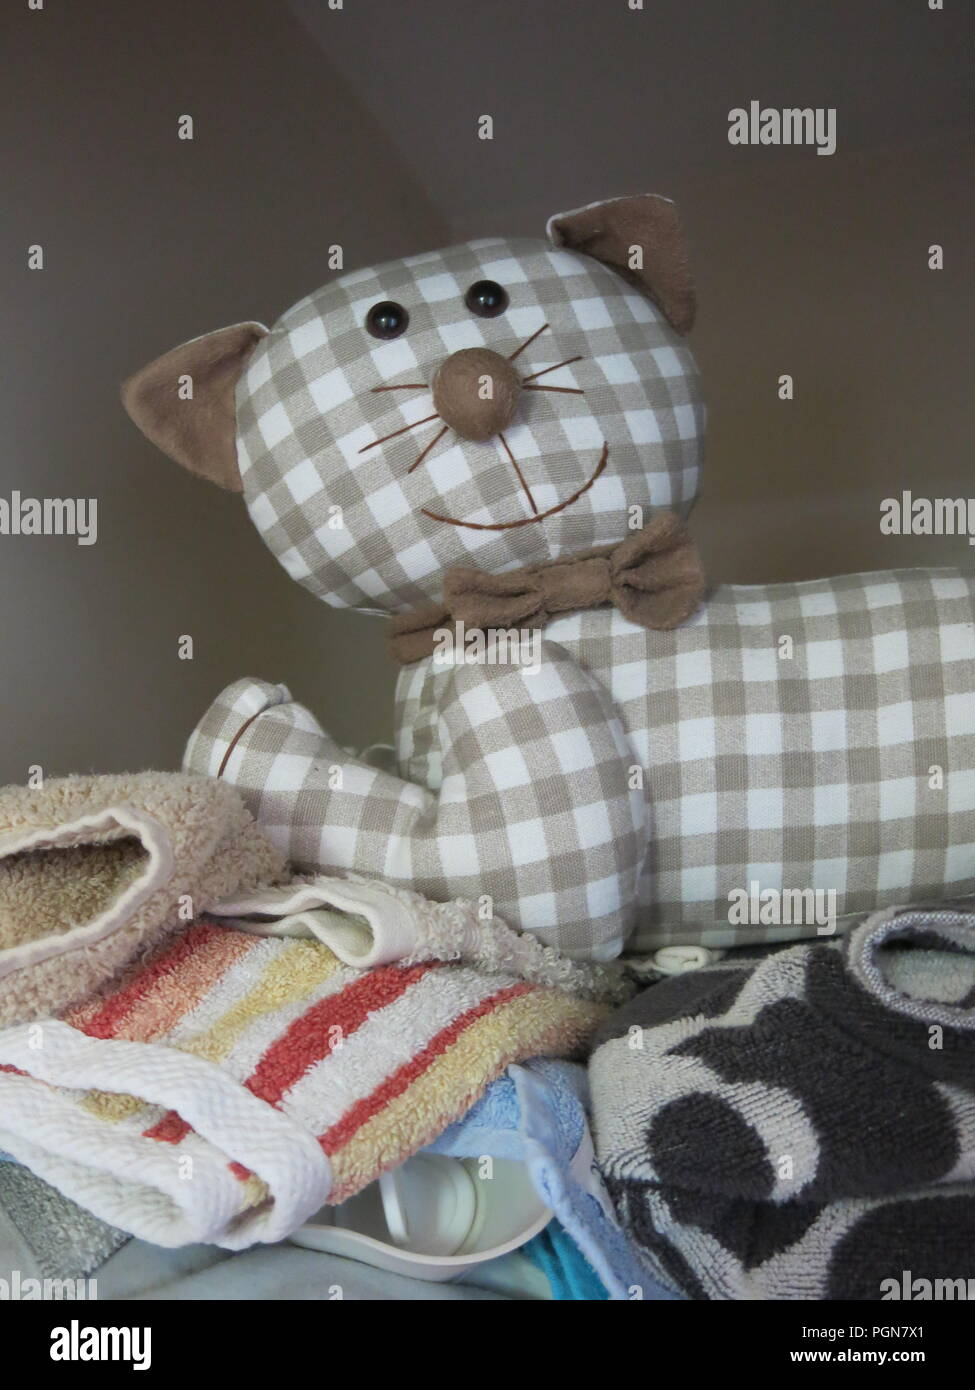 Cloth cat with a smiley face is hiding in the airing cupboard on top of a pile of towels - Stock Image